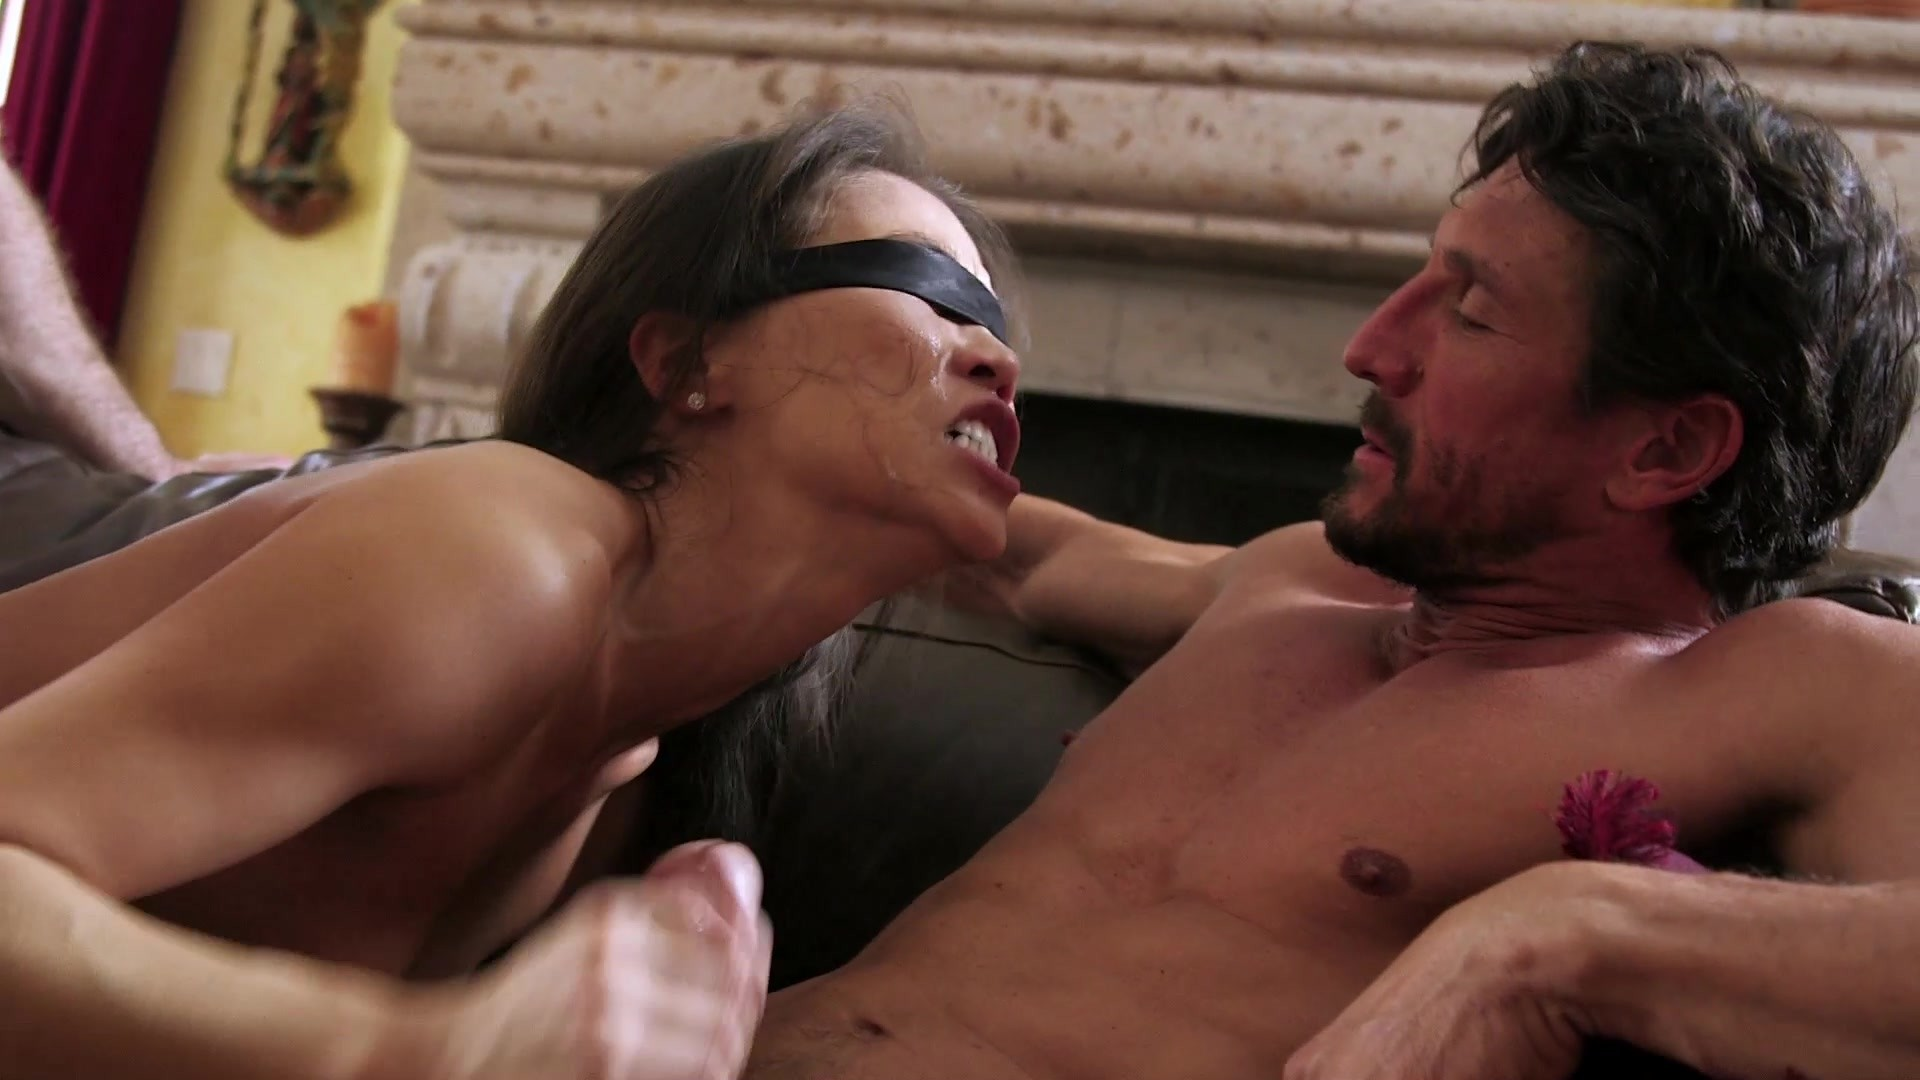 Scene with Tommy Gunn, John Strong and Kalina Ryu - image 10 out of 20